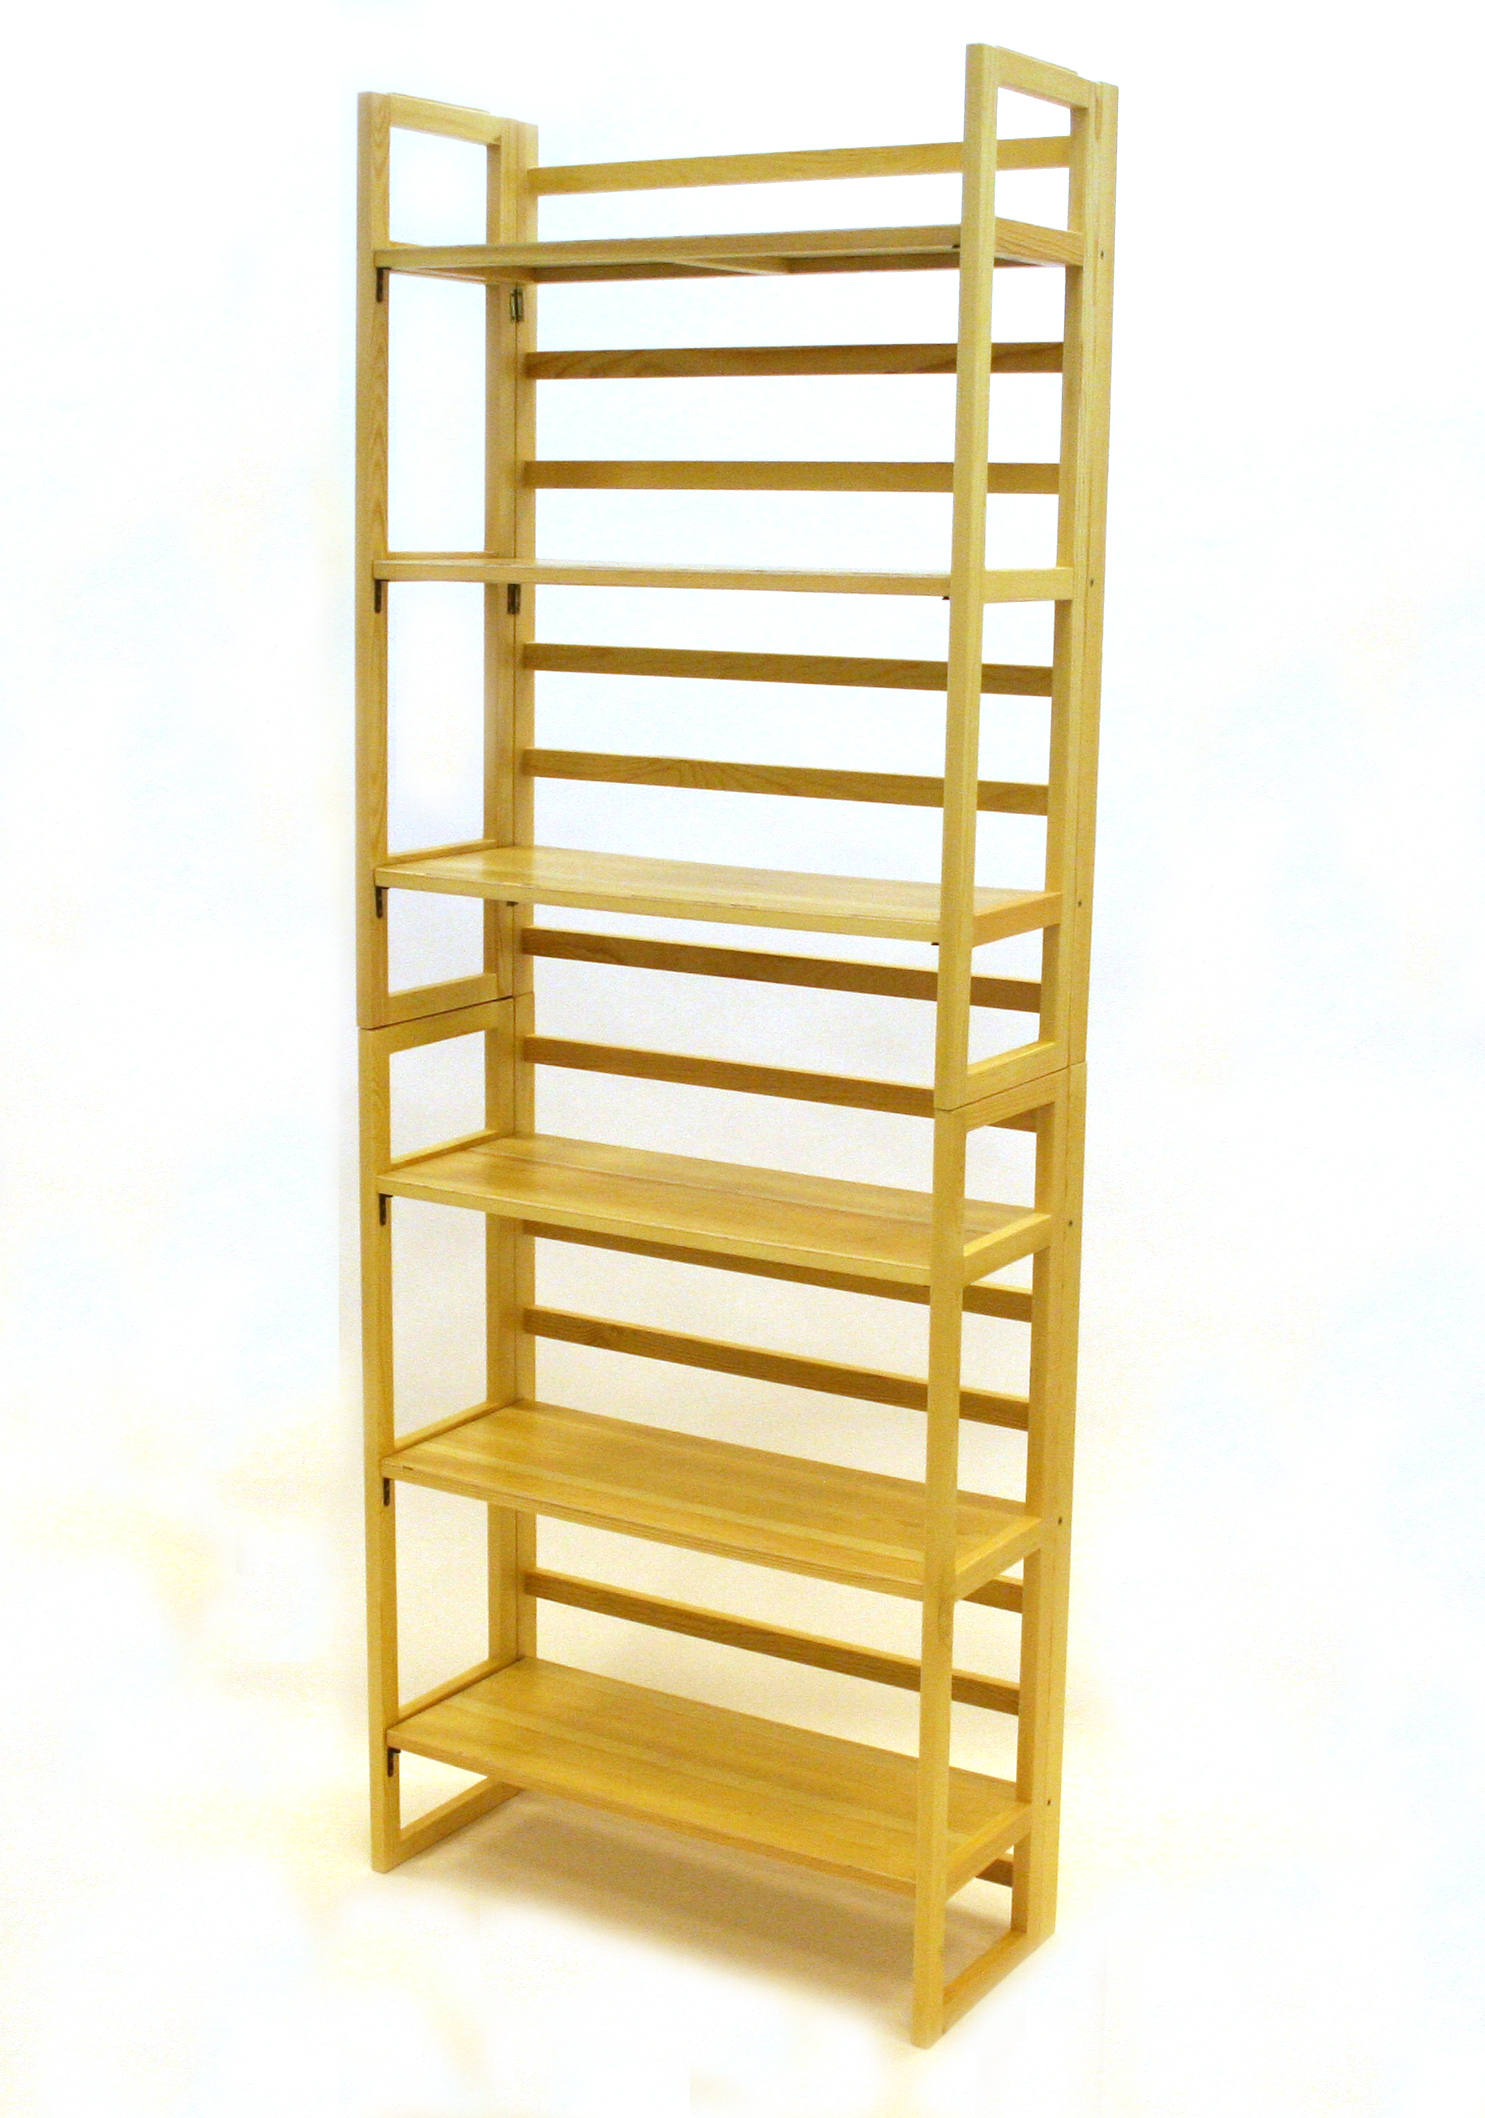 Terrific Stacking Wooden Bookshelves Display Stands Home Interior And Landscaping Dextoversignezvosmurscom